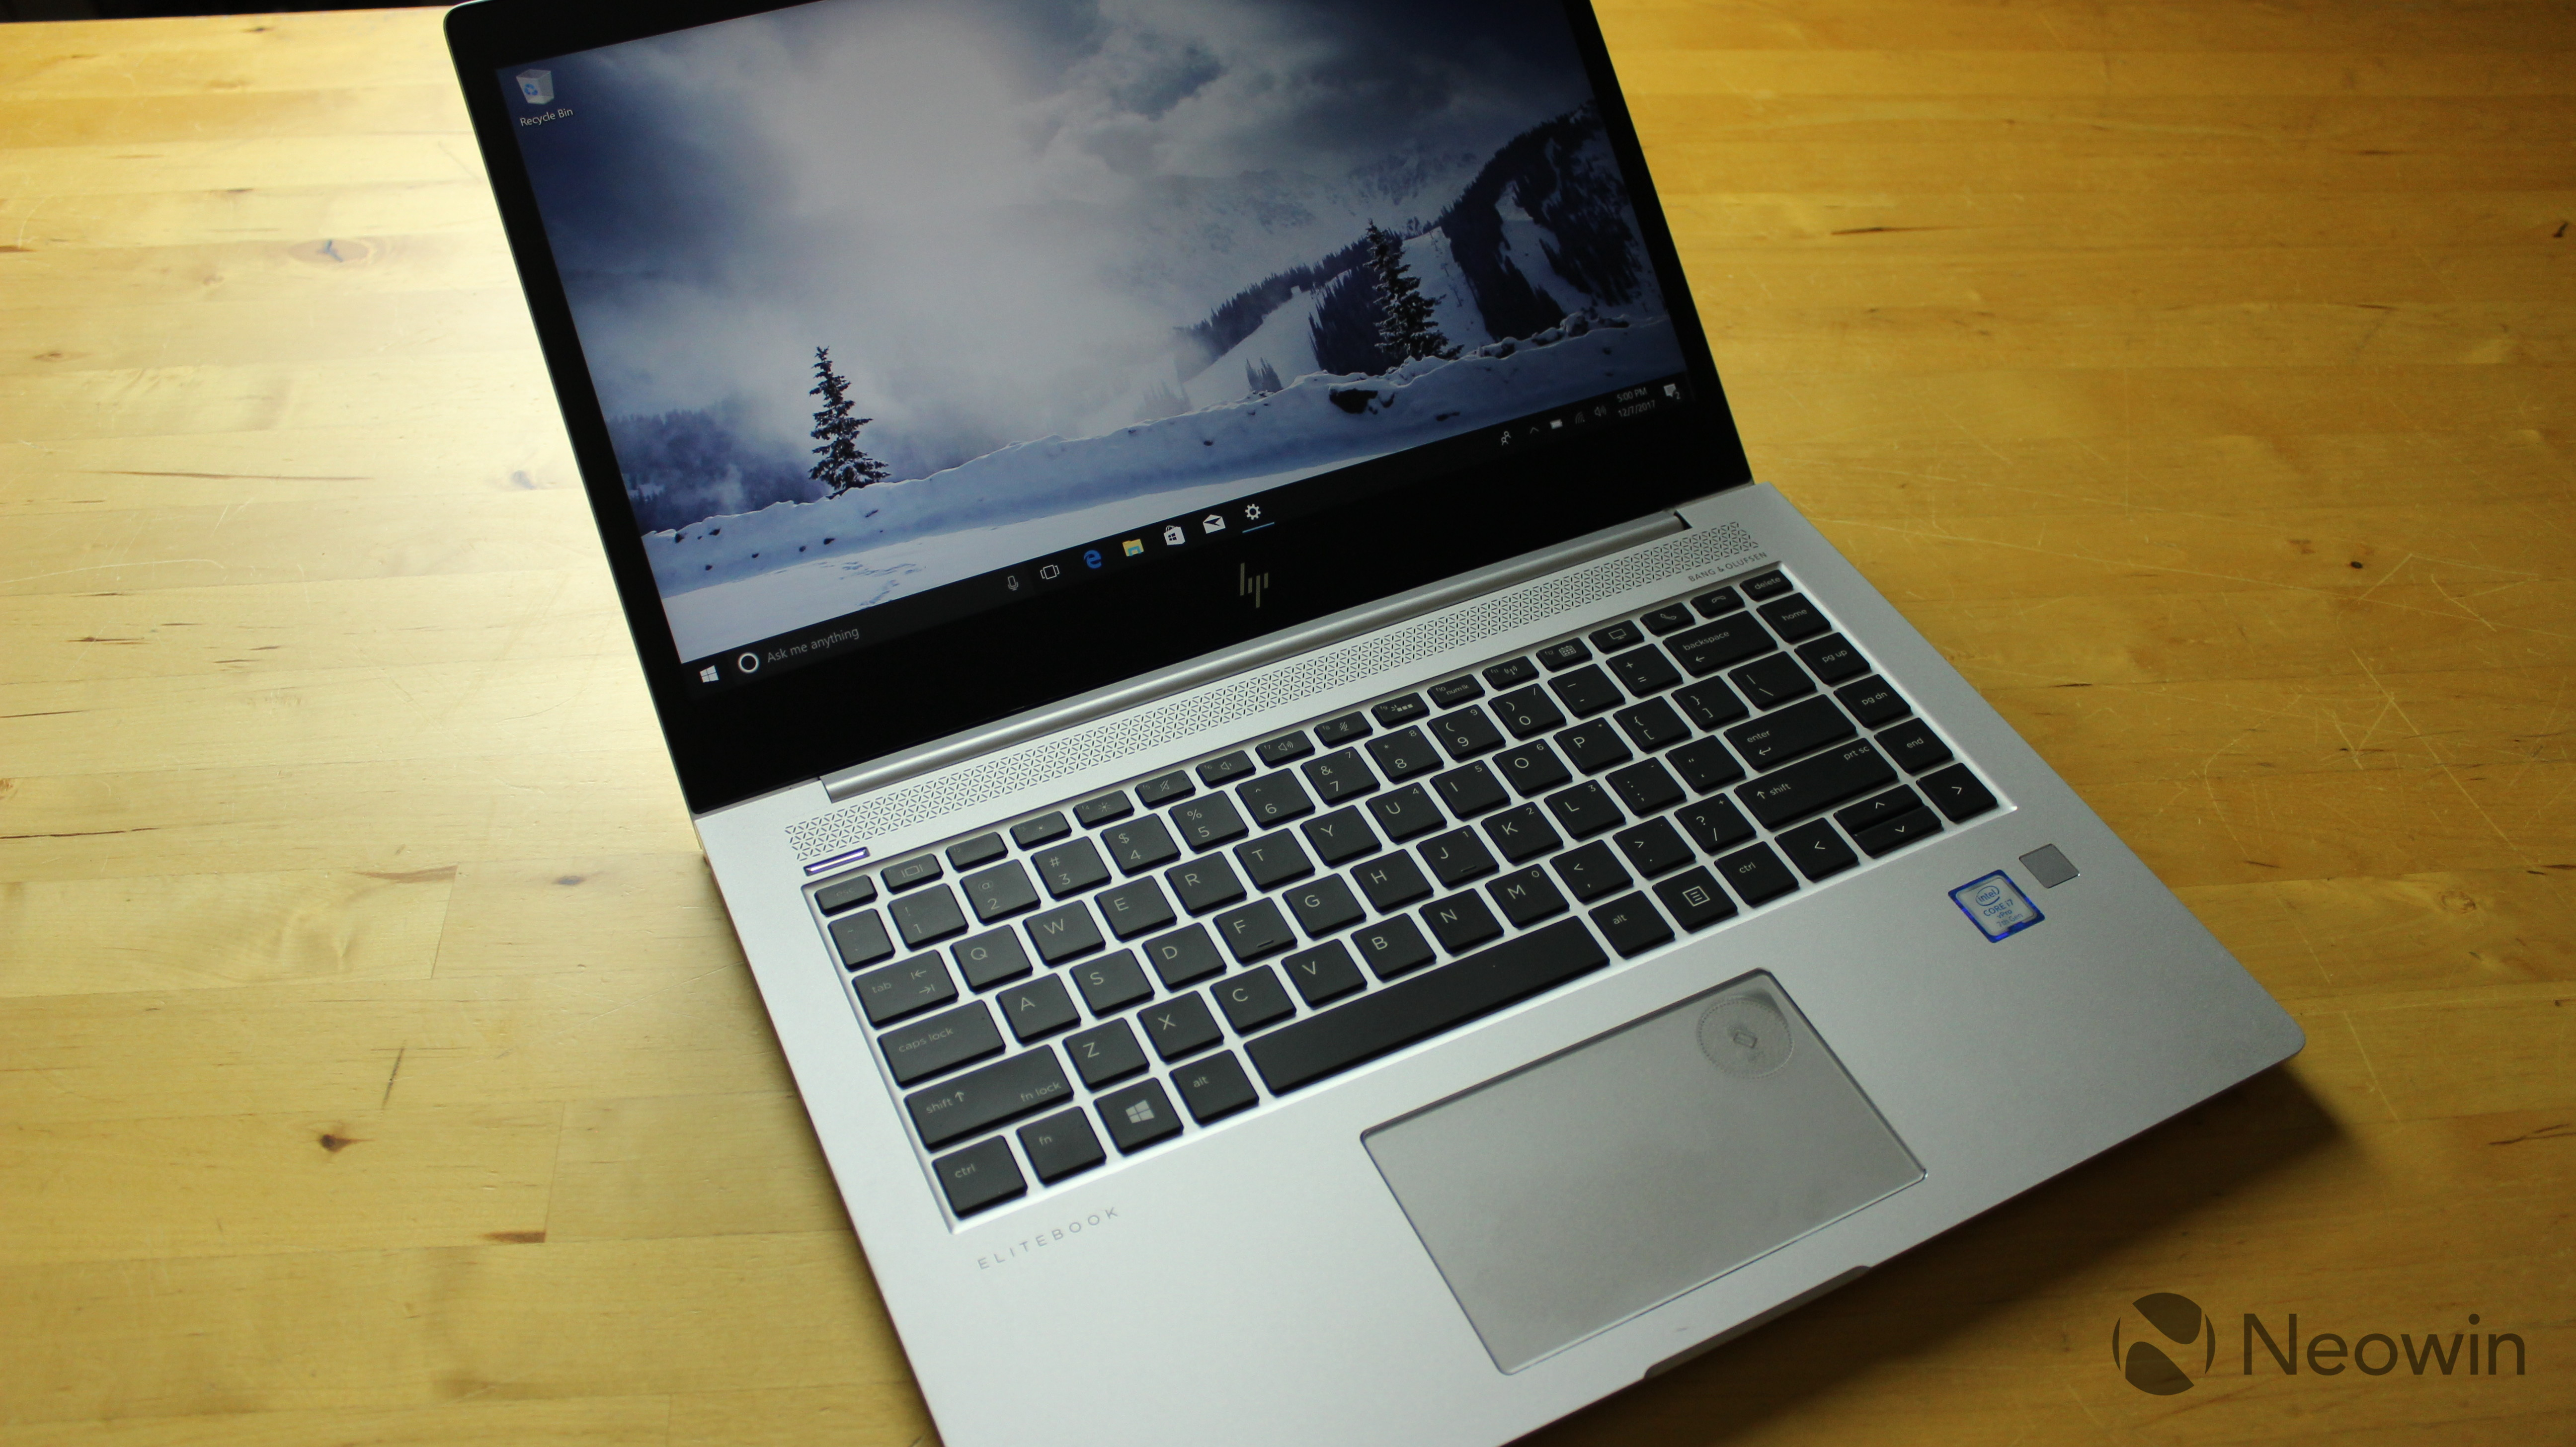 HP EliteBook 1040 G4 review: A powerful laptop that checks the right